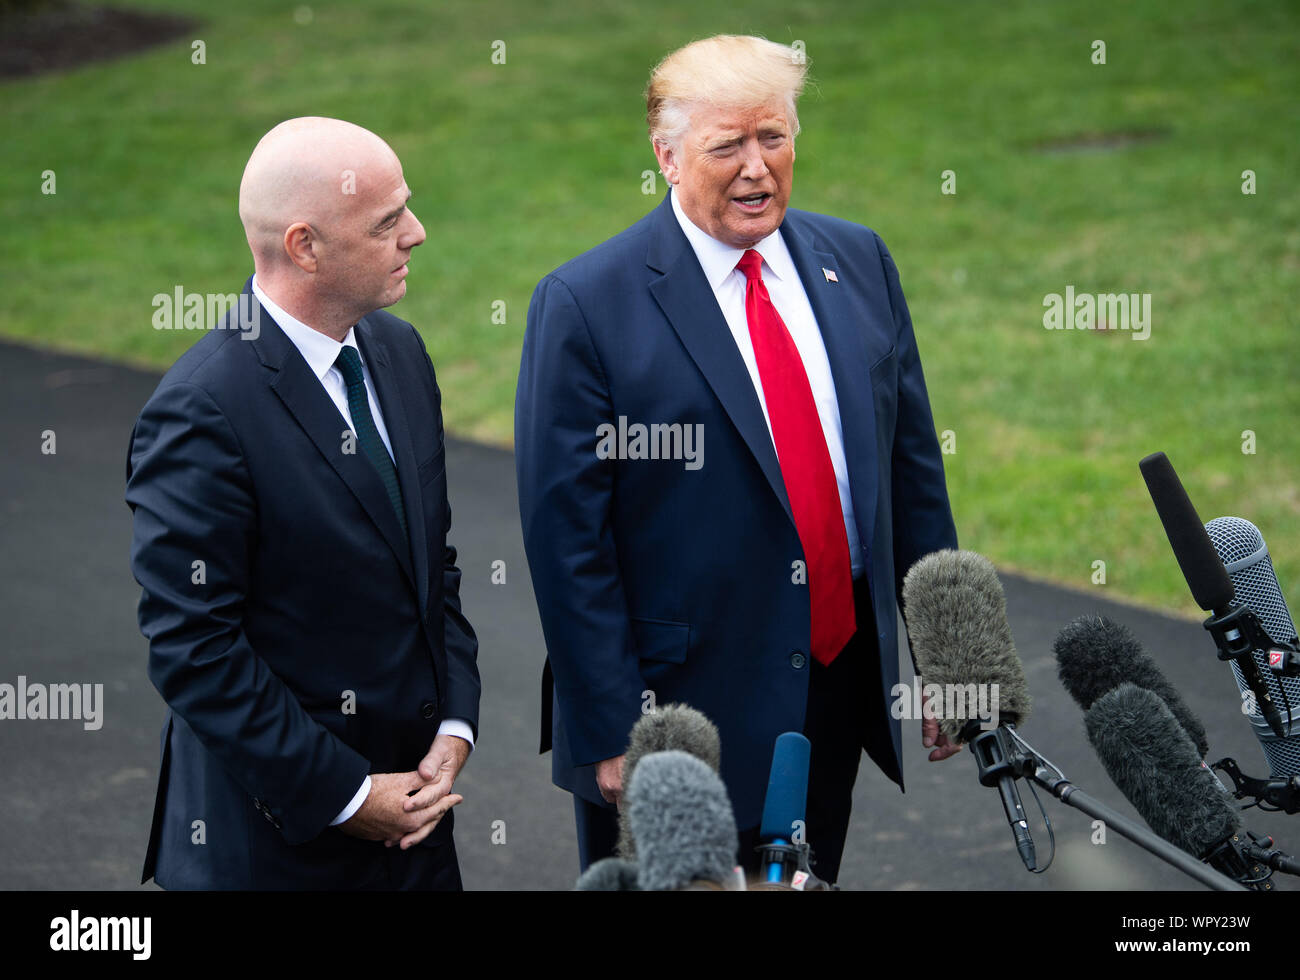 Washington DC, USA. 9th Sep 2019. President Donald Trump (R) and FIFA President Gianni Infantino speak to the media as Trump departs the White House for a rally in North Carolina, in Washington, DC on Monday, September 9, 2019. Photo by Kevin Dietsch/UPI Credit: UPI/Alamy Live News Stock Photo